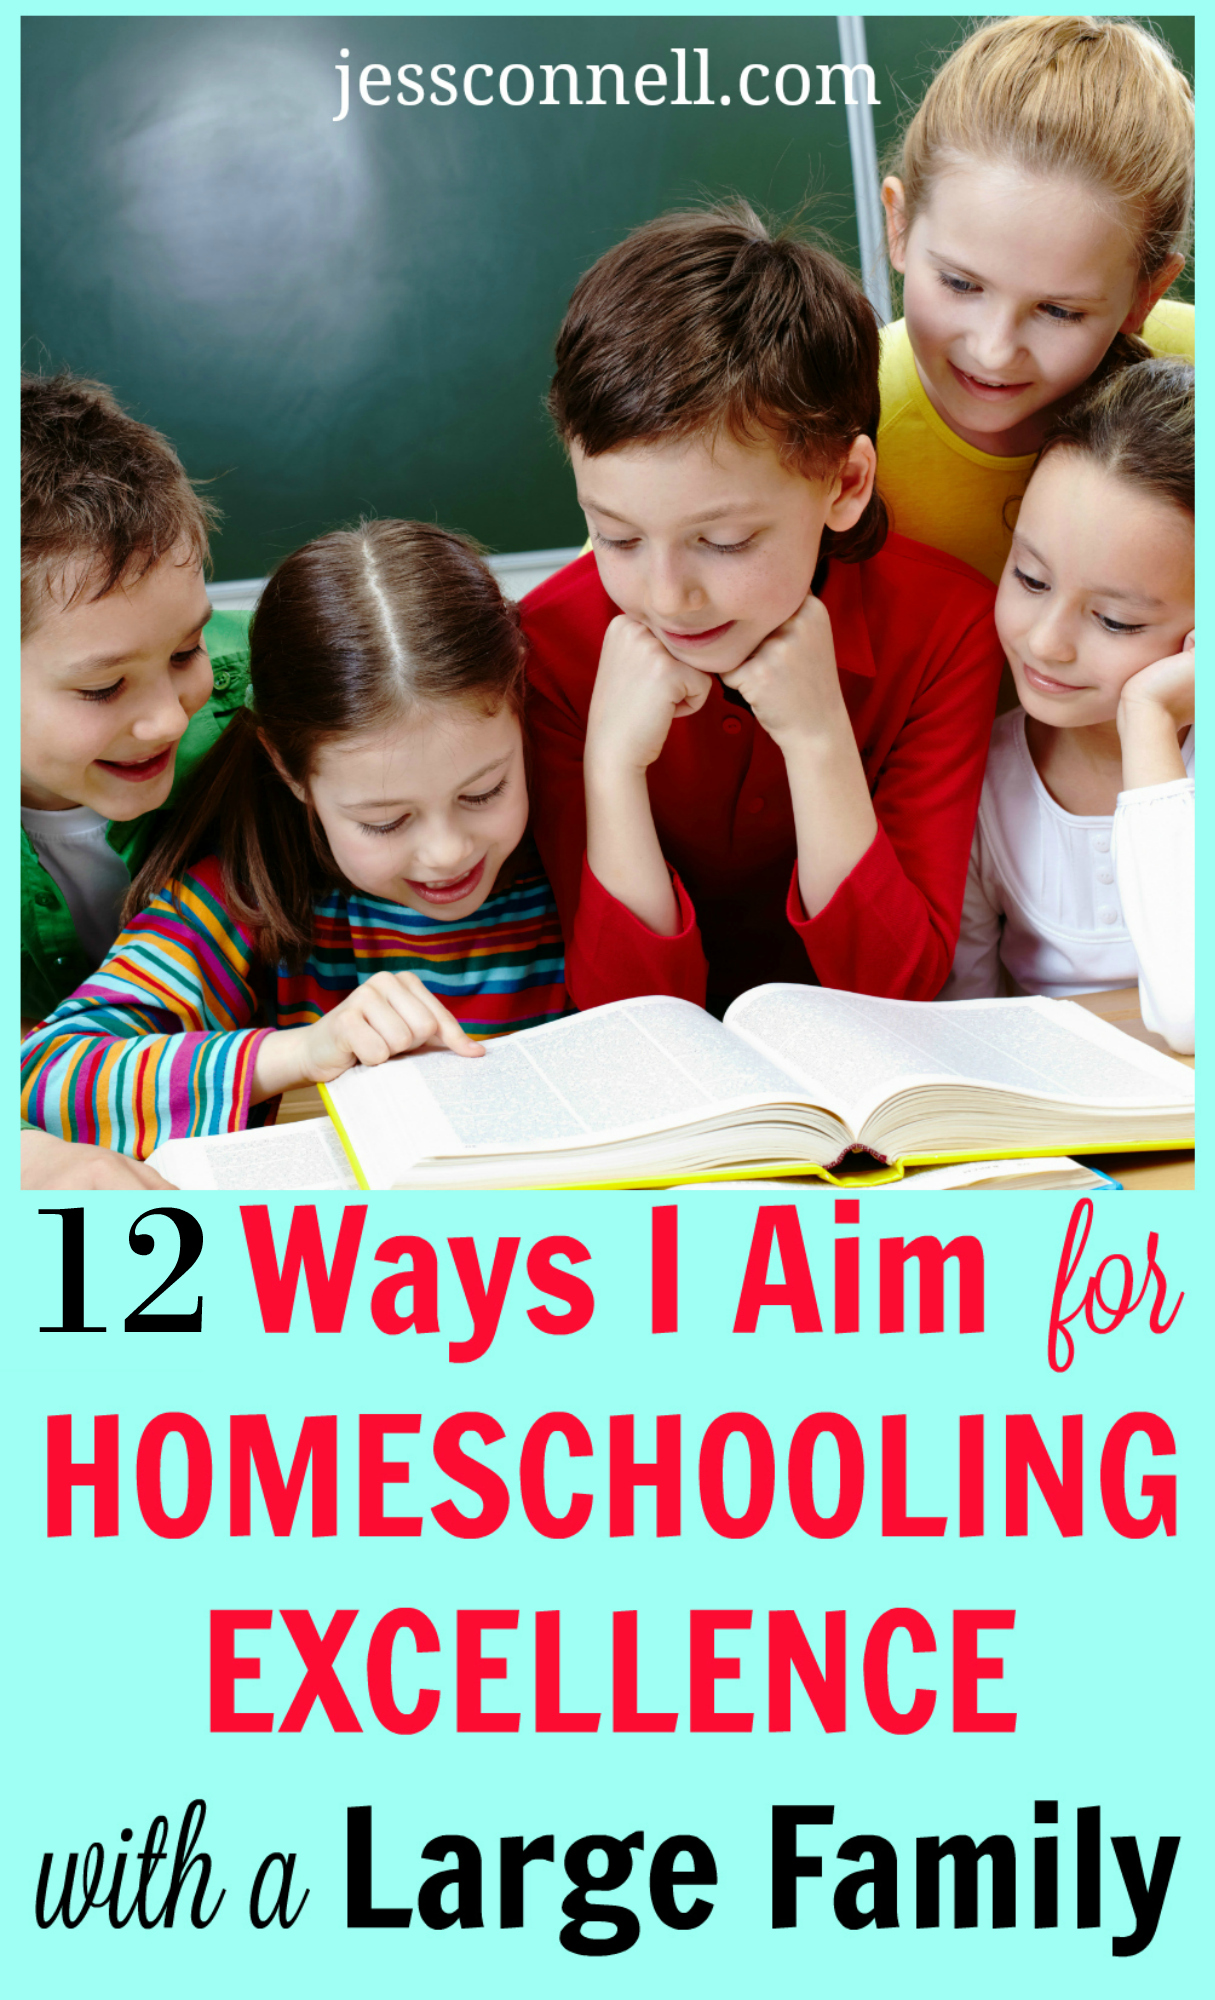 12 Ways I Aim for HOMESCHOOLING EXCELLENCE with a Large Family // jessconnell.com